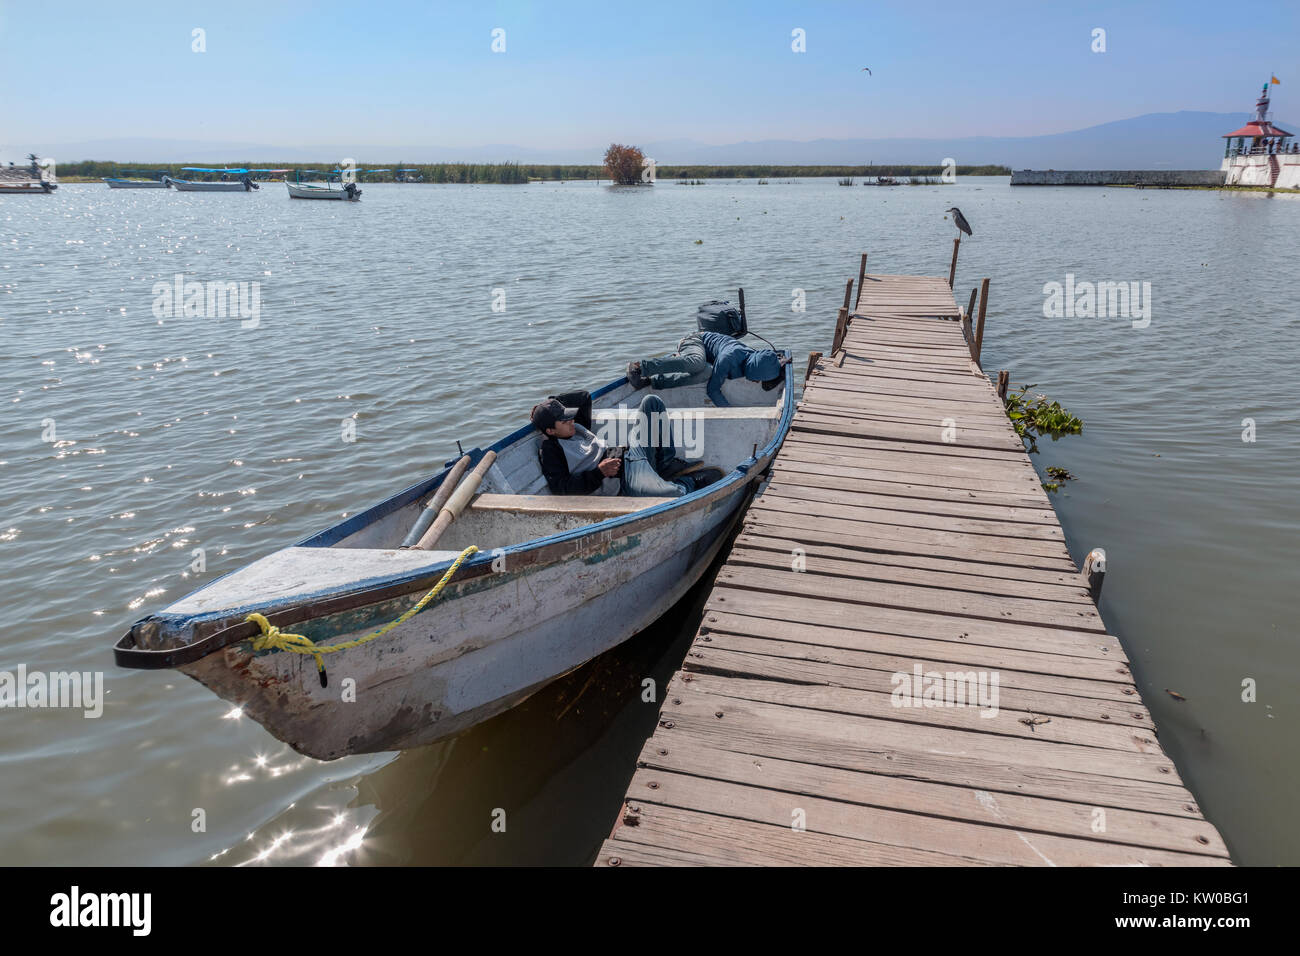 Siesta time at the harbour, Chapala, Jalisco, Mexico - Stock Image